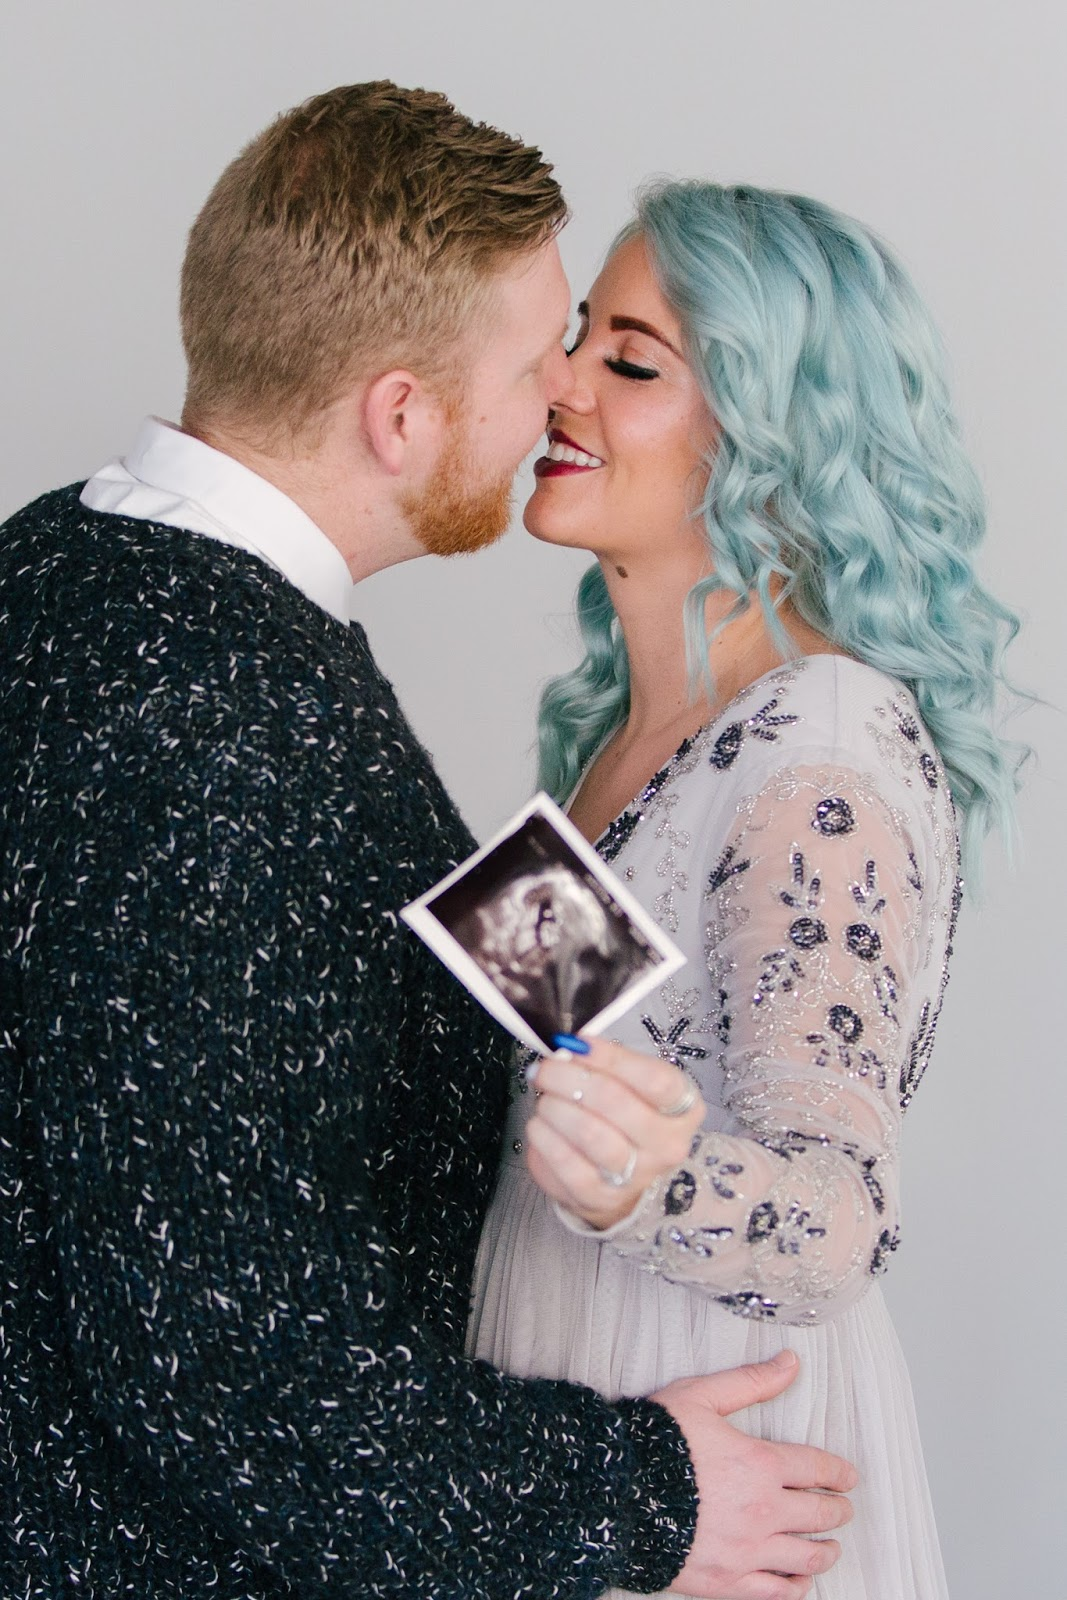 Ultrasound photos, Fashion blogger